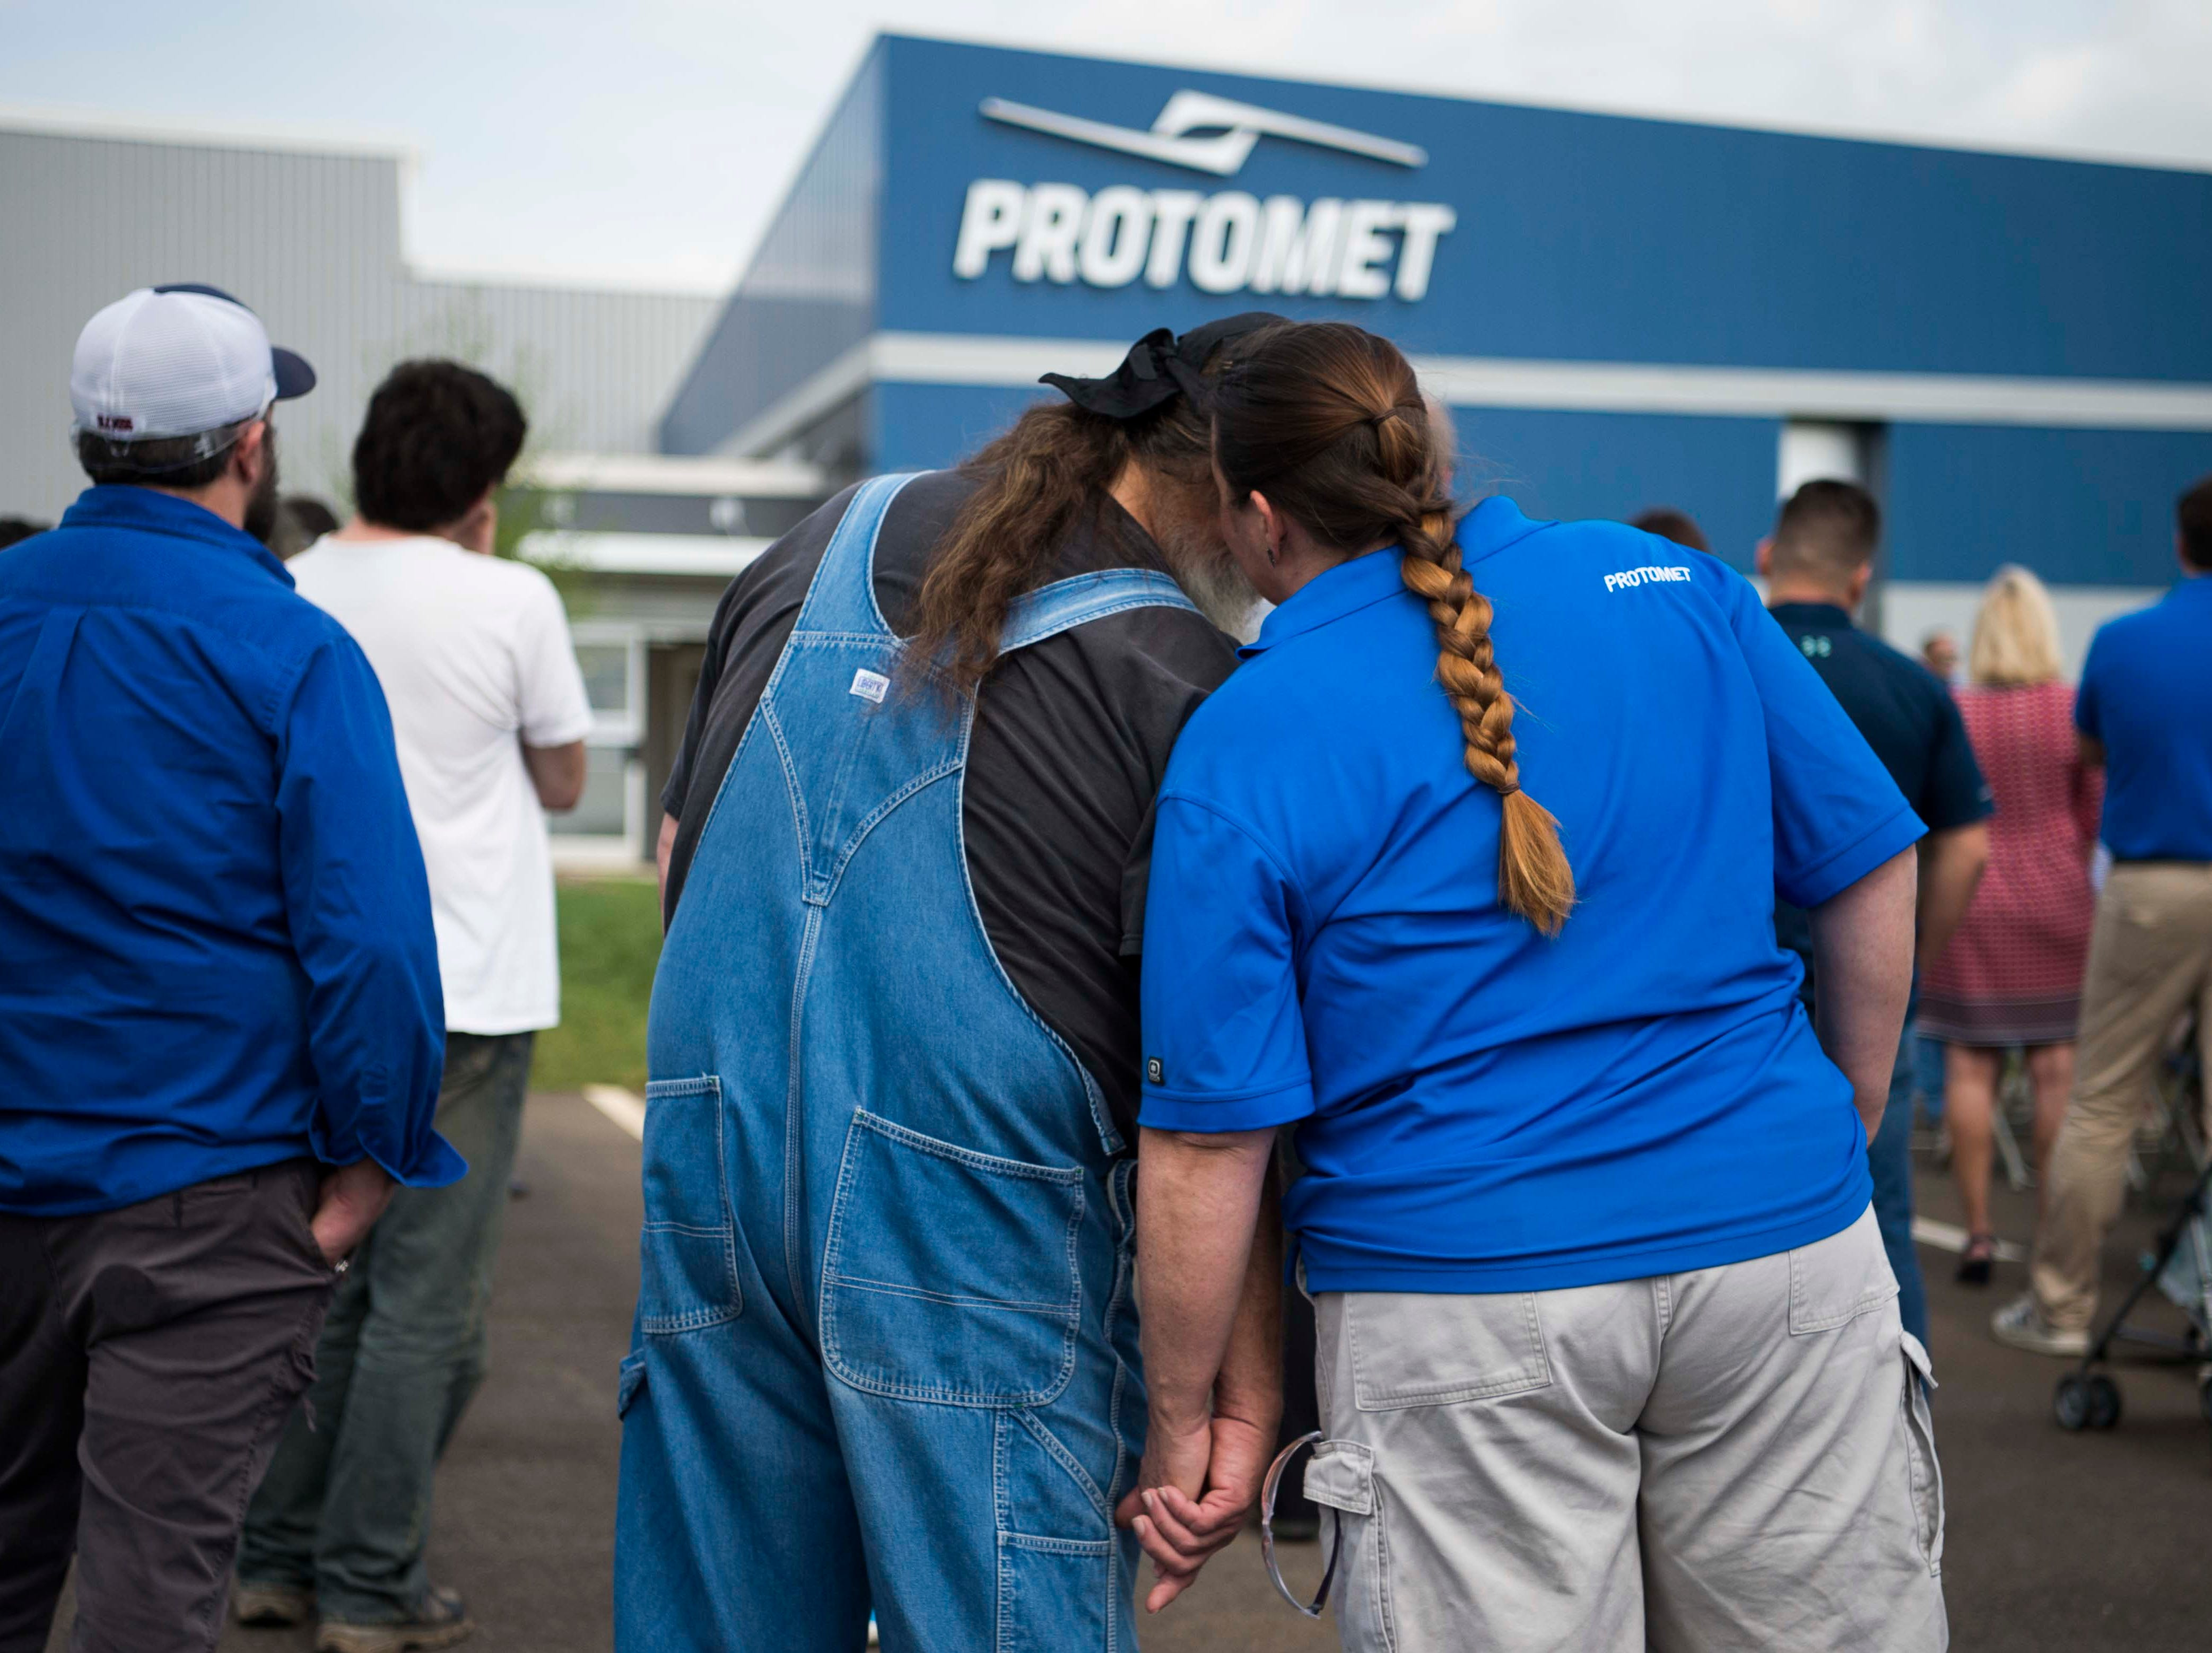 A couple shares conversation at the opening of Protomet Corporation's $30 million, 244,000 square foot plant in Loudon County Thursday, April 18, 2019. When fully staffed the facility will create 200 new jobs for Loudon County.